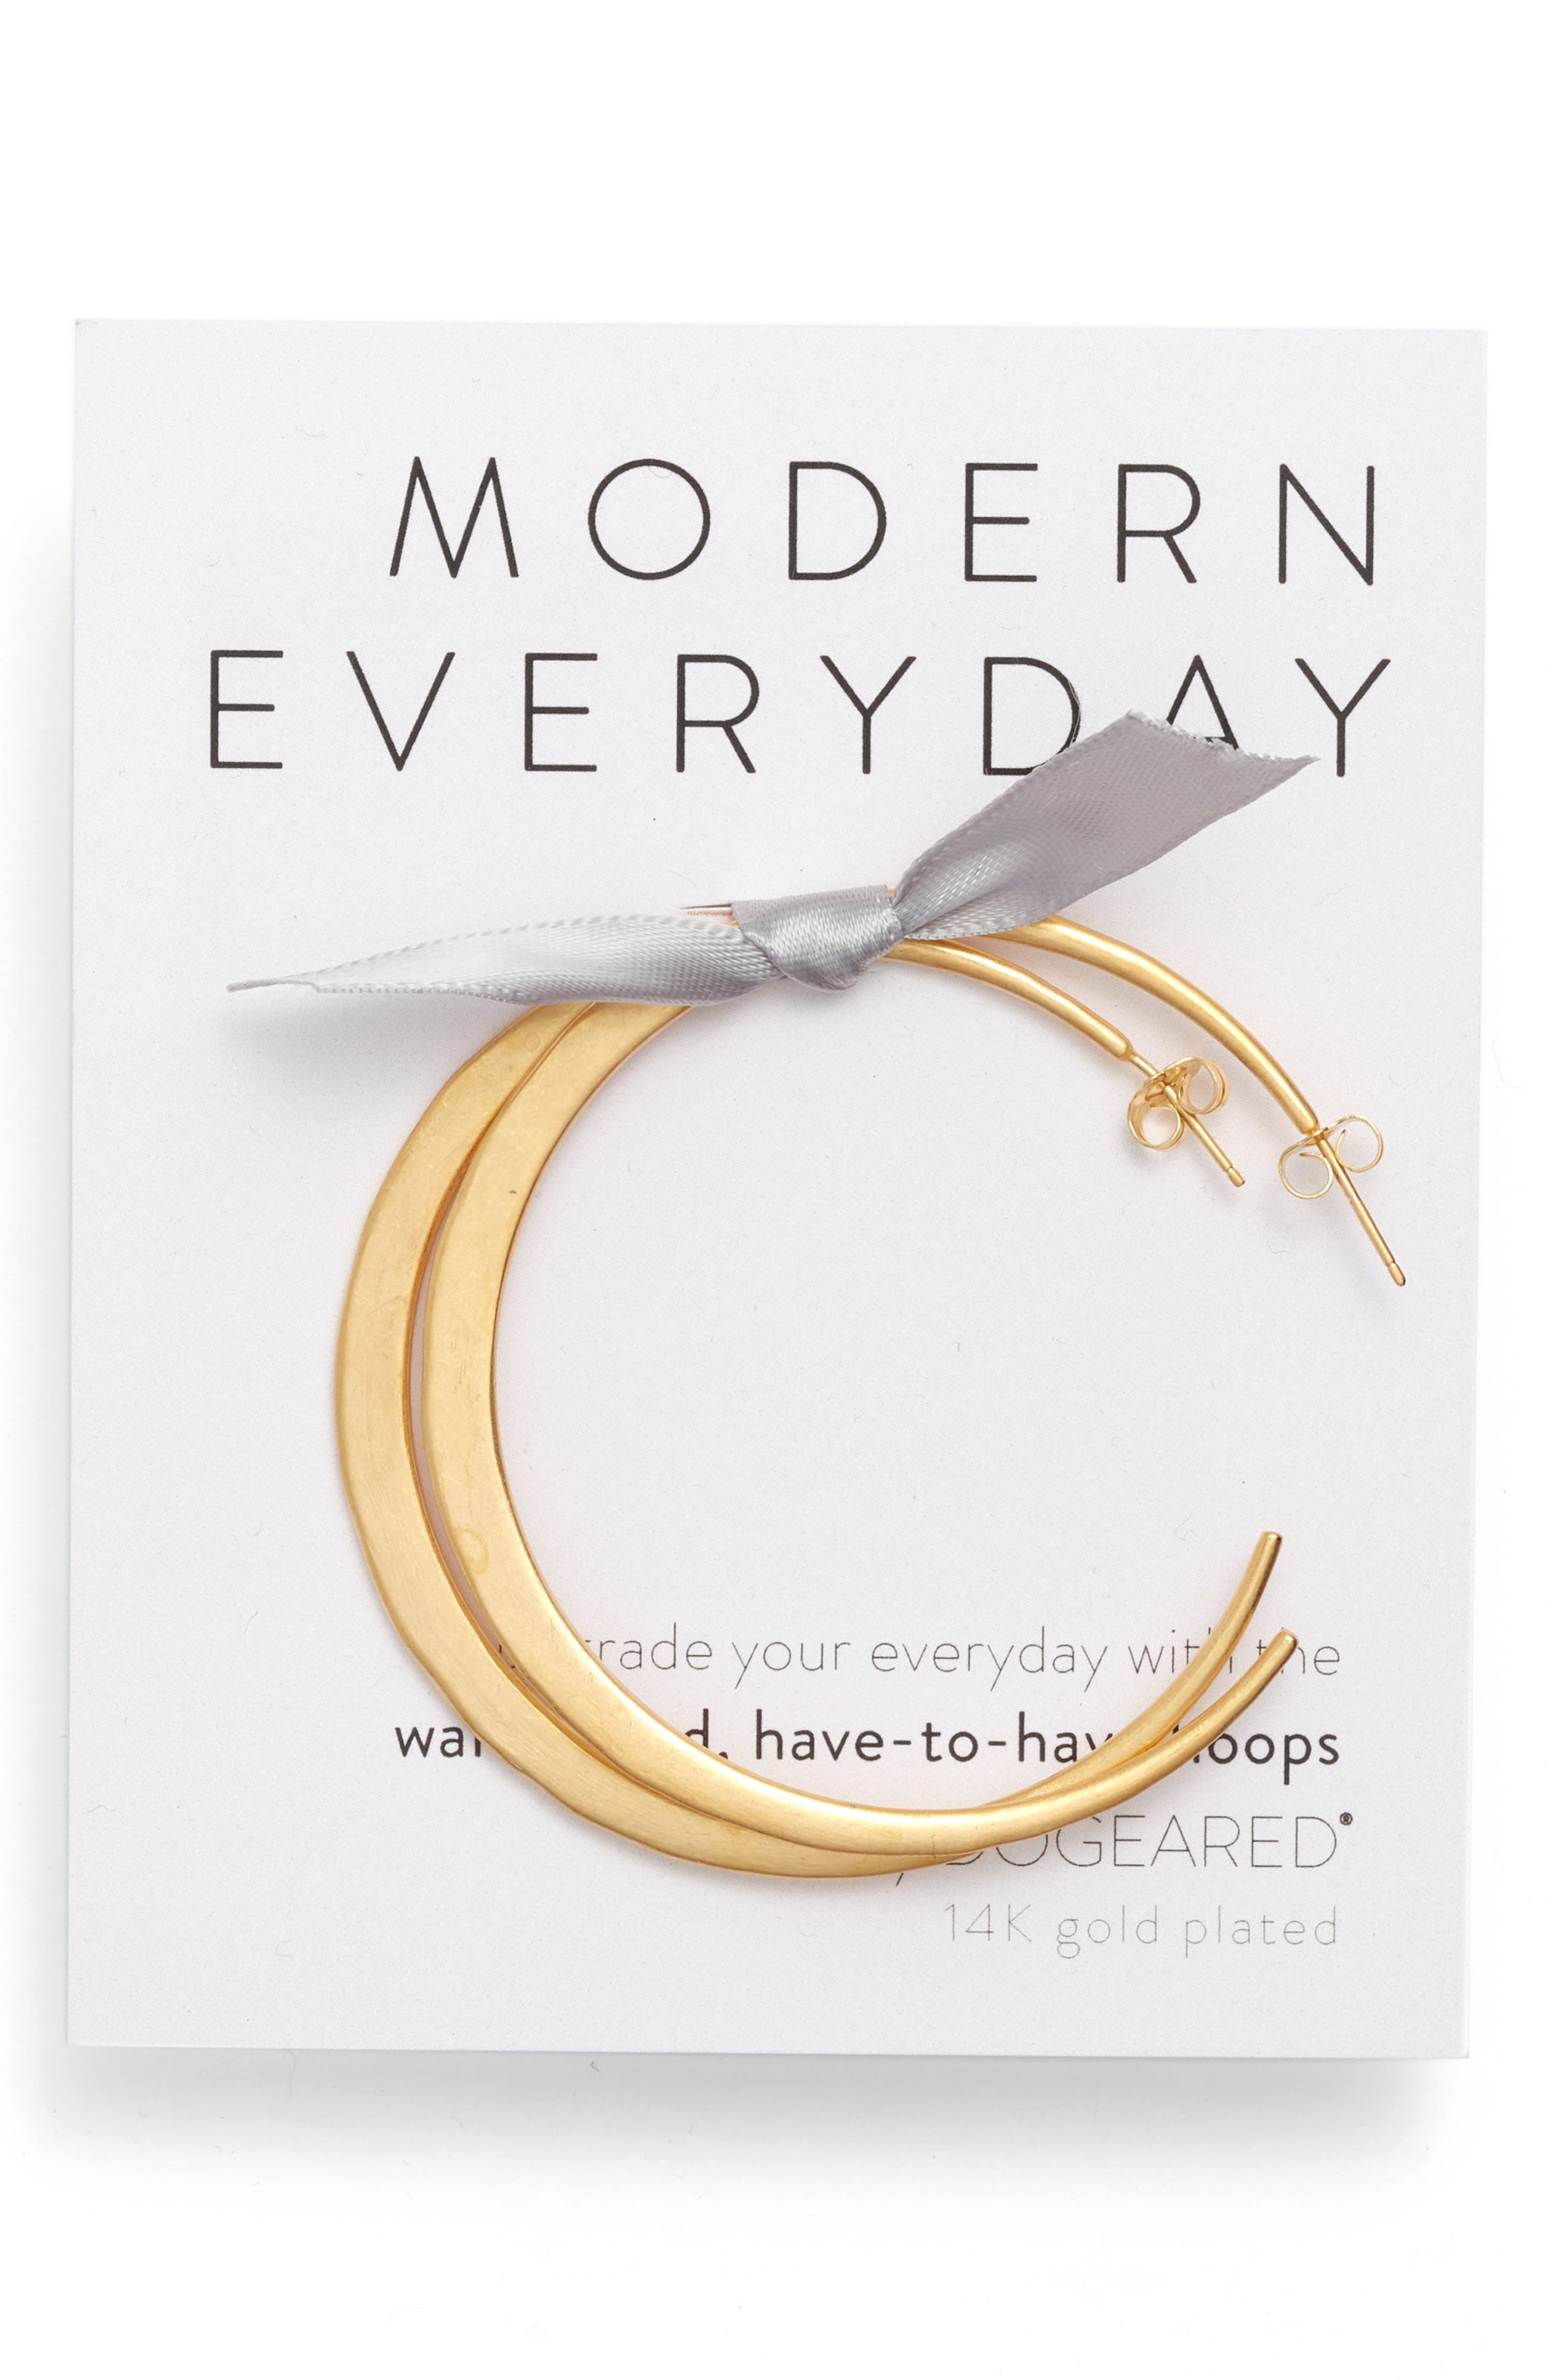 DOGEARED Modern Everyday Have To Have Hoop Earrings in Gold